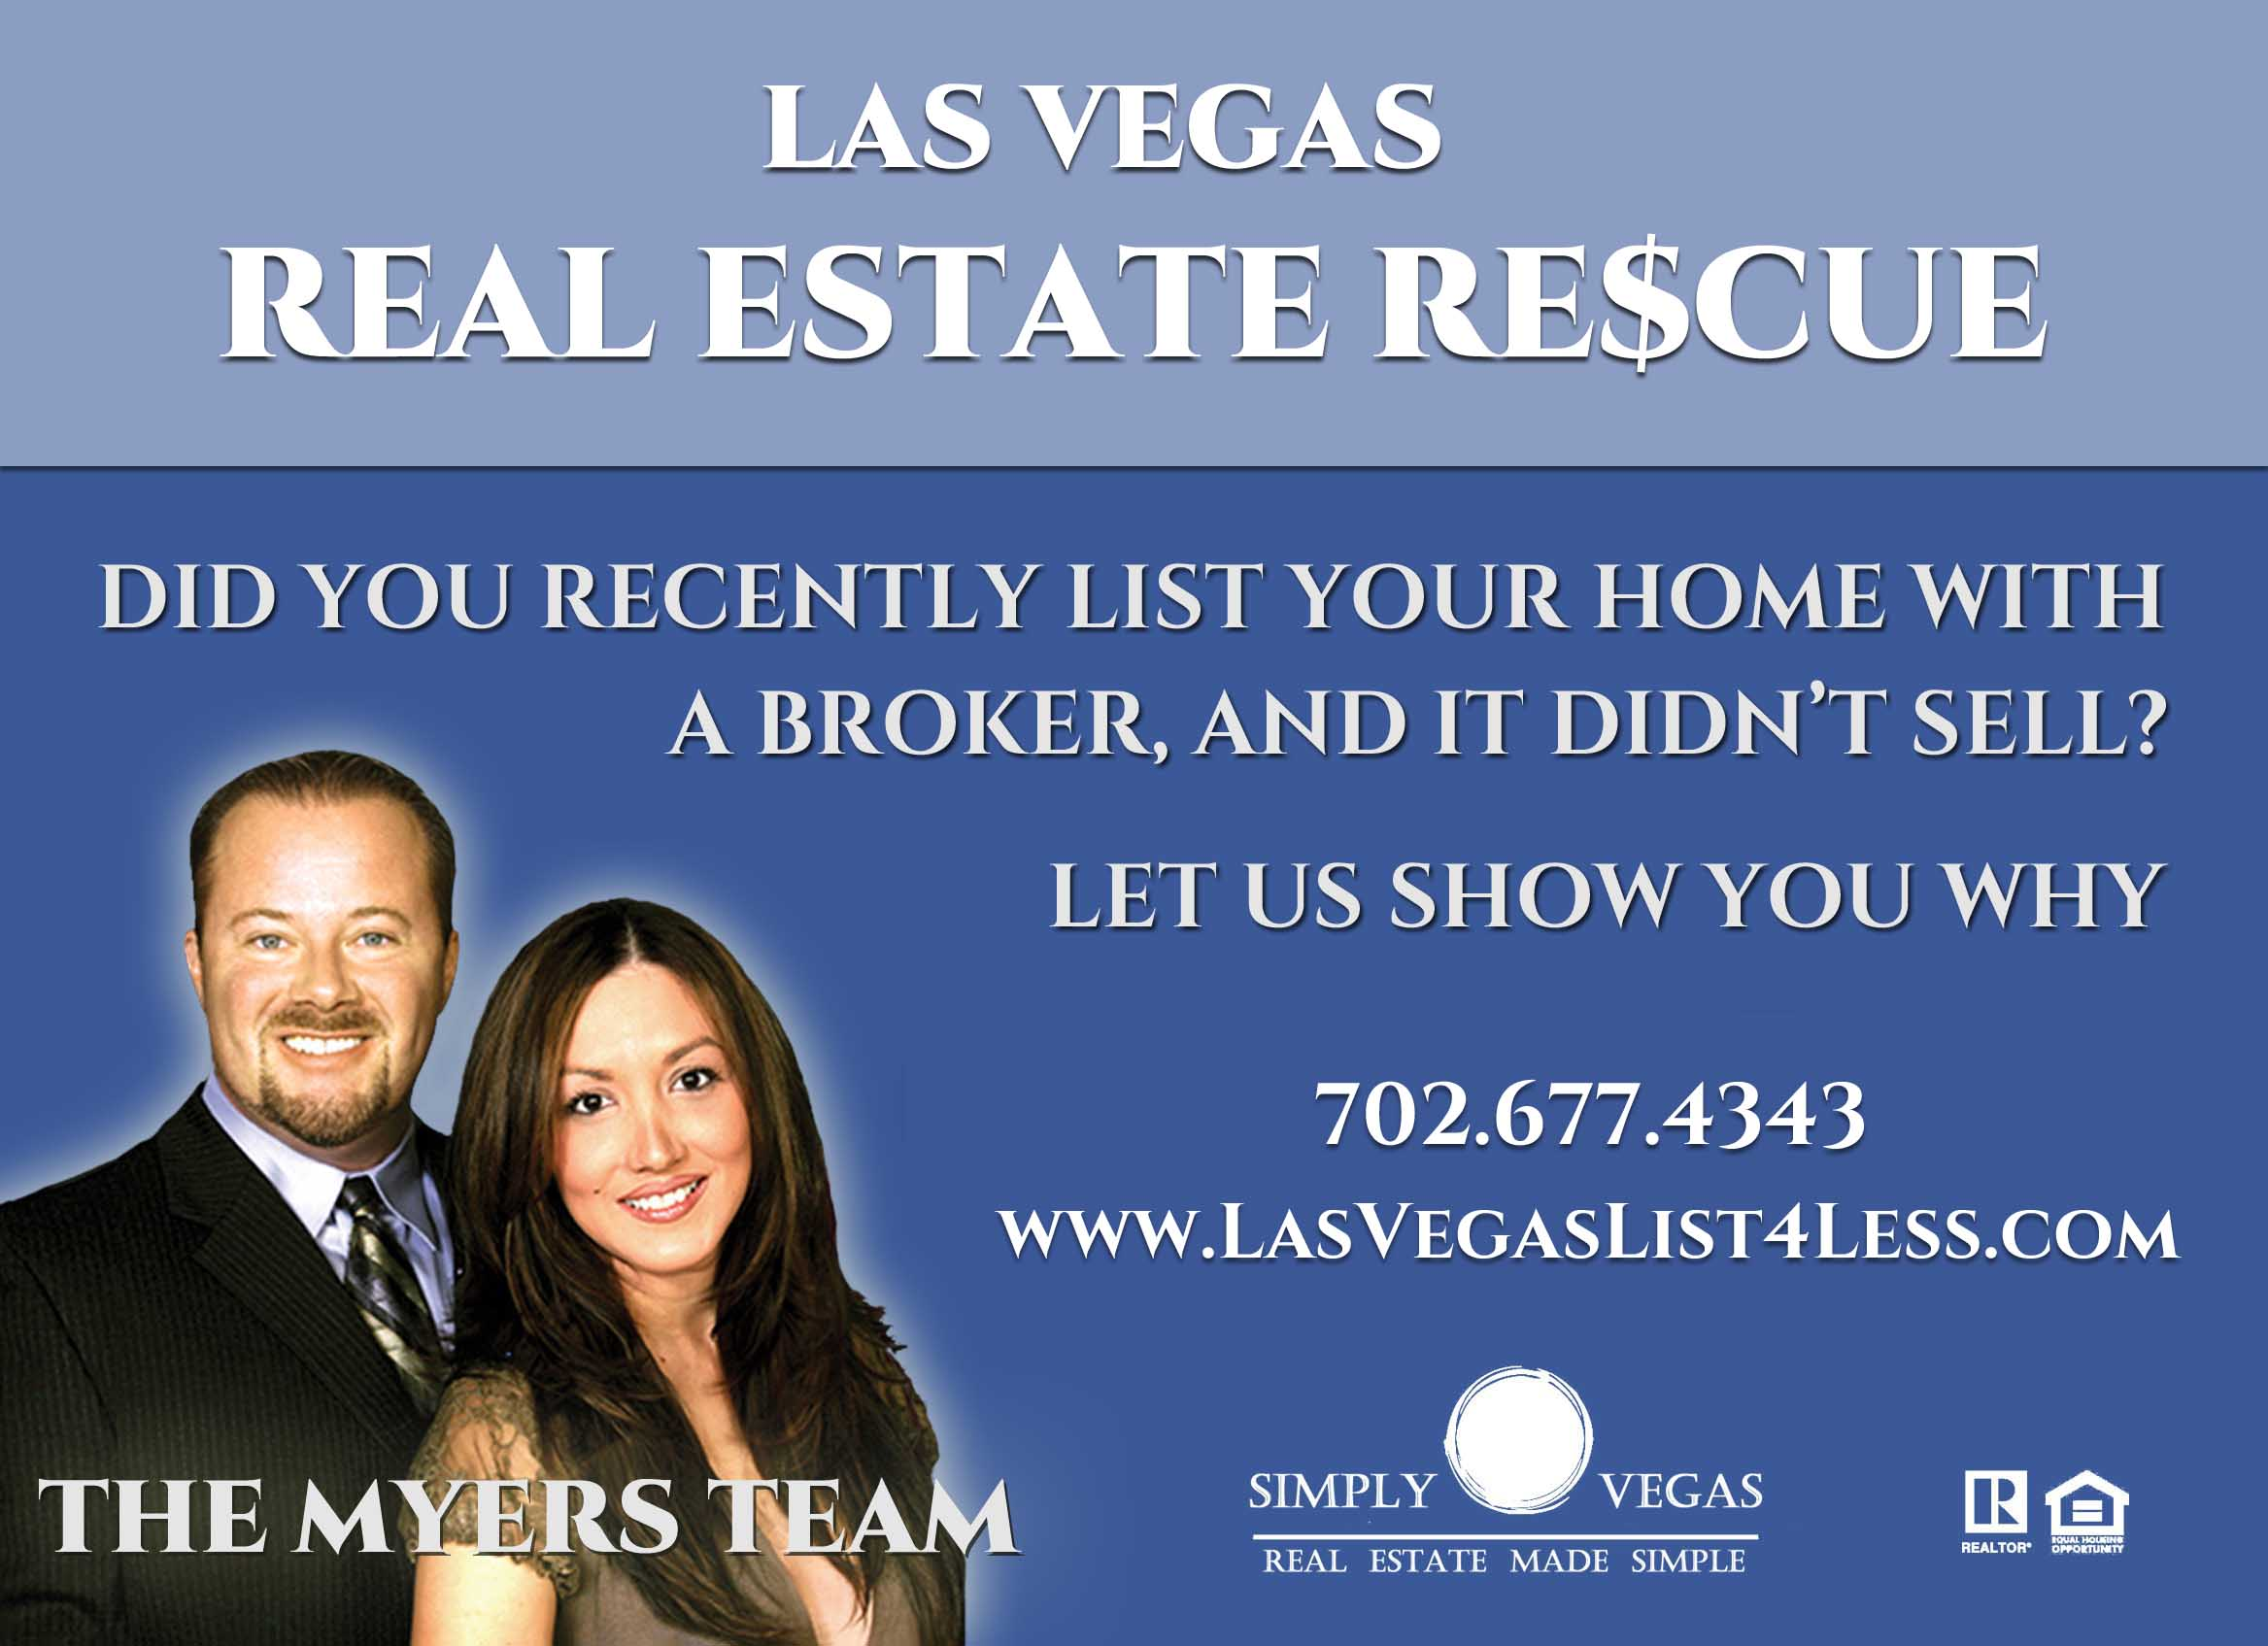 Las Vegas Top Realtor